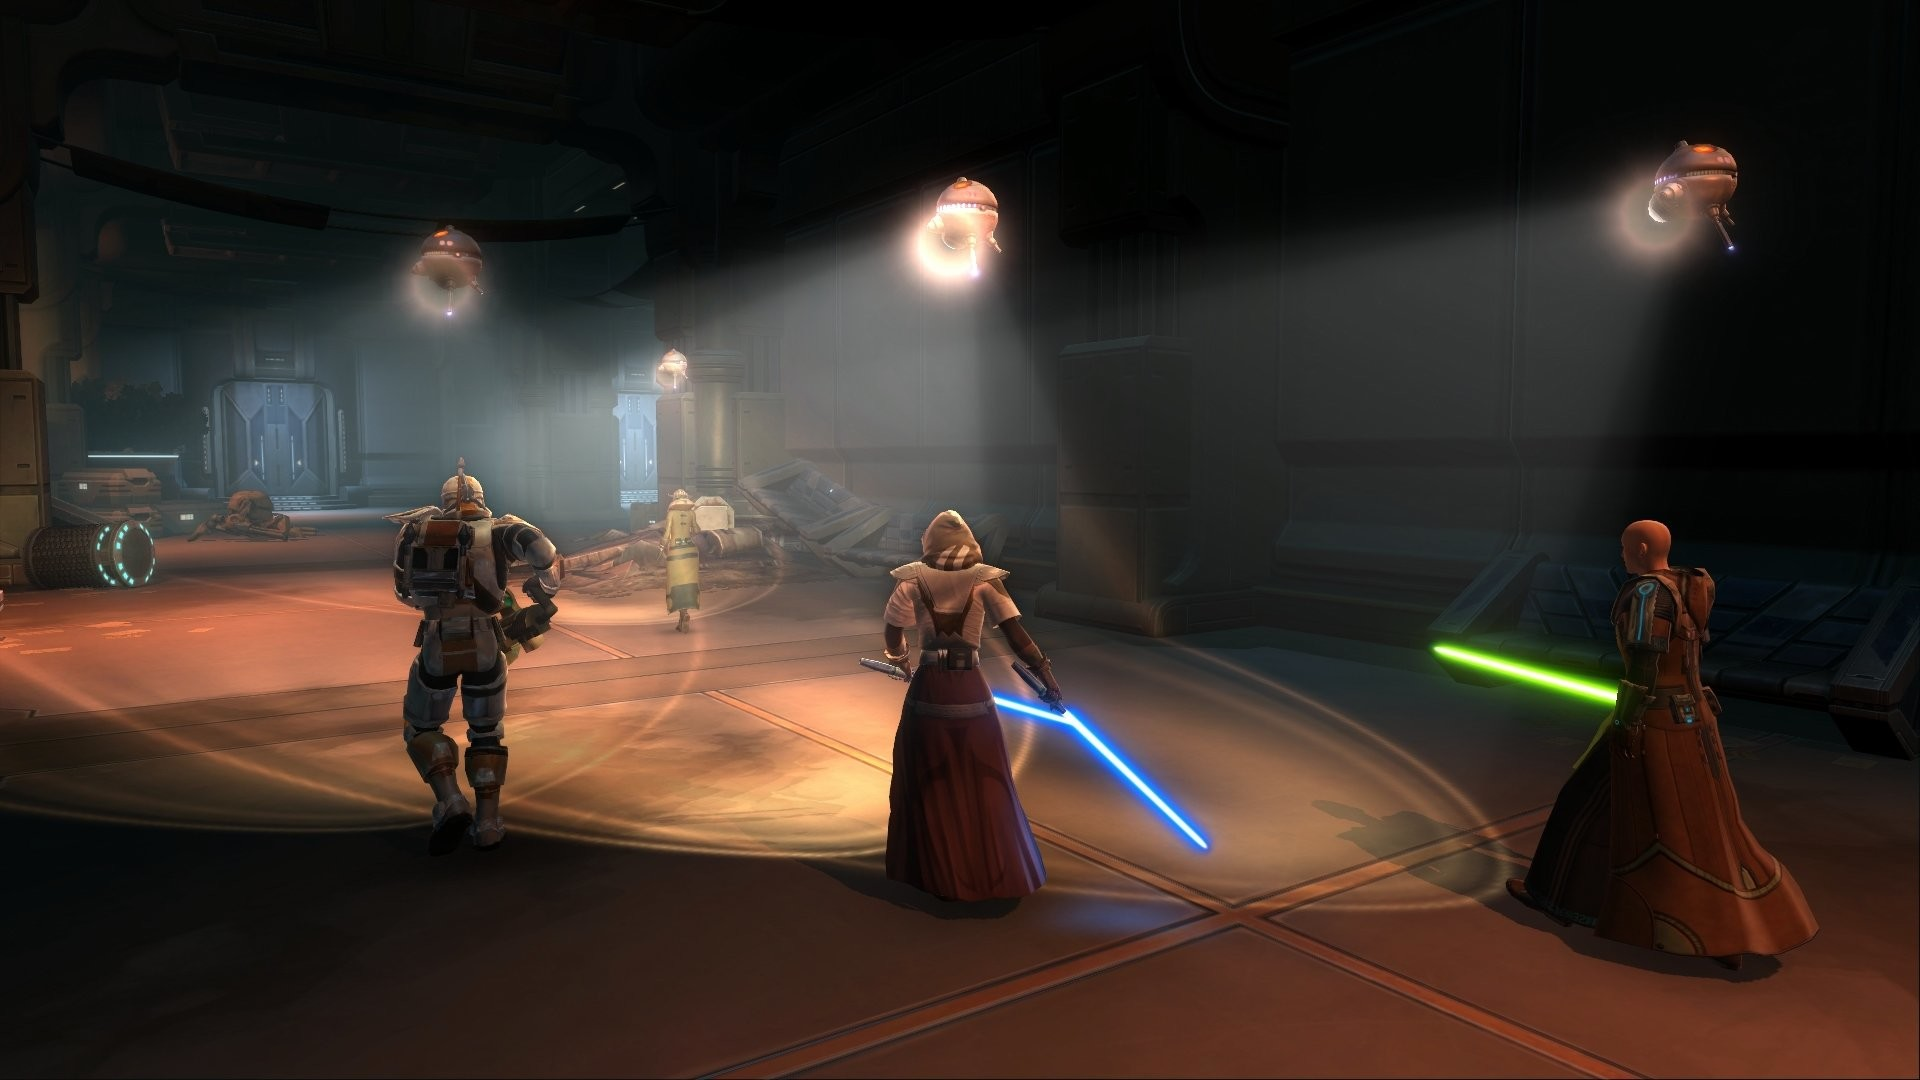 1920x1080 ... STAR WARS OLD REPUBLIC mmo rpg swtor fighting sci fi wallpaper